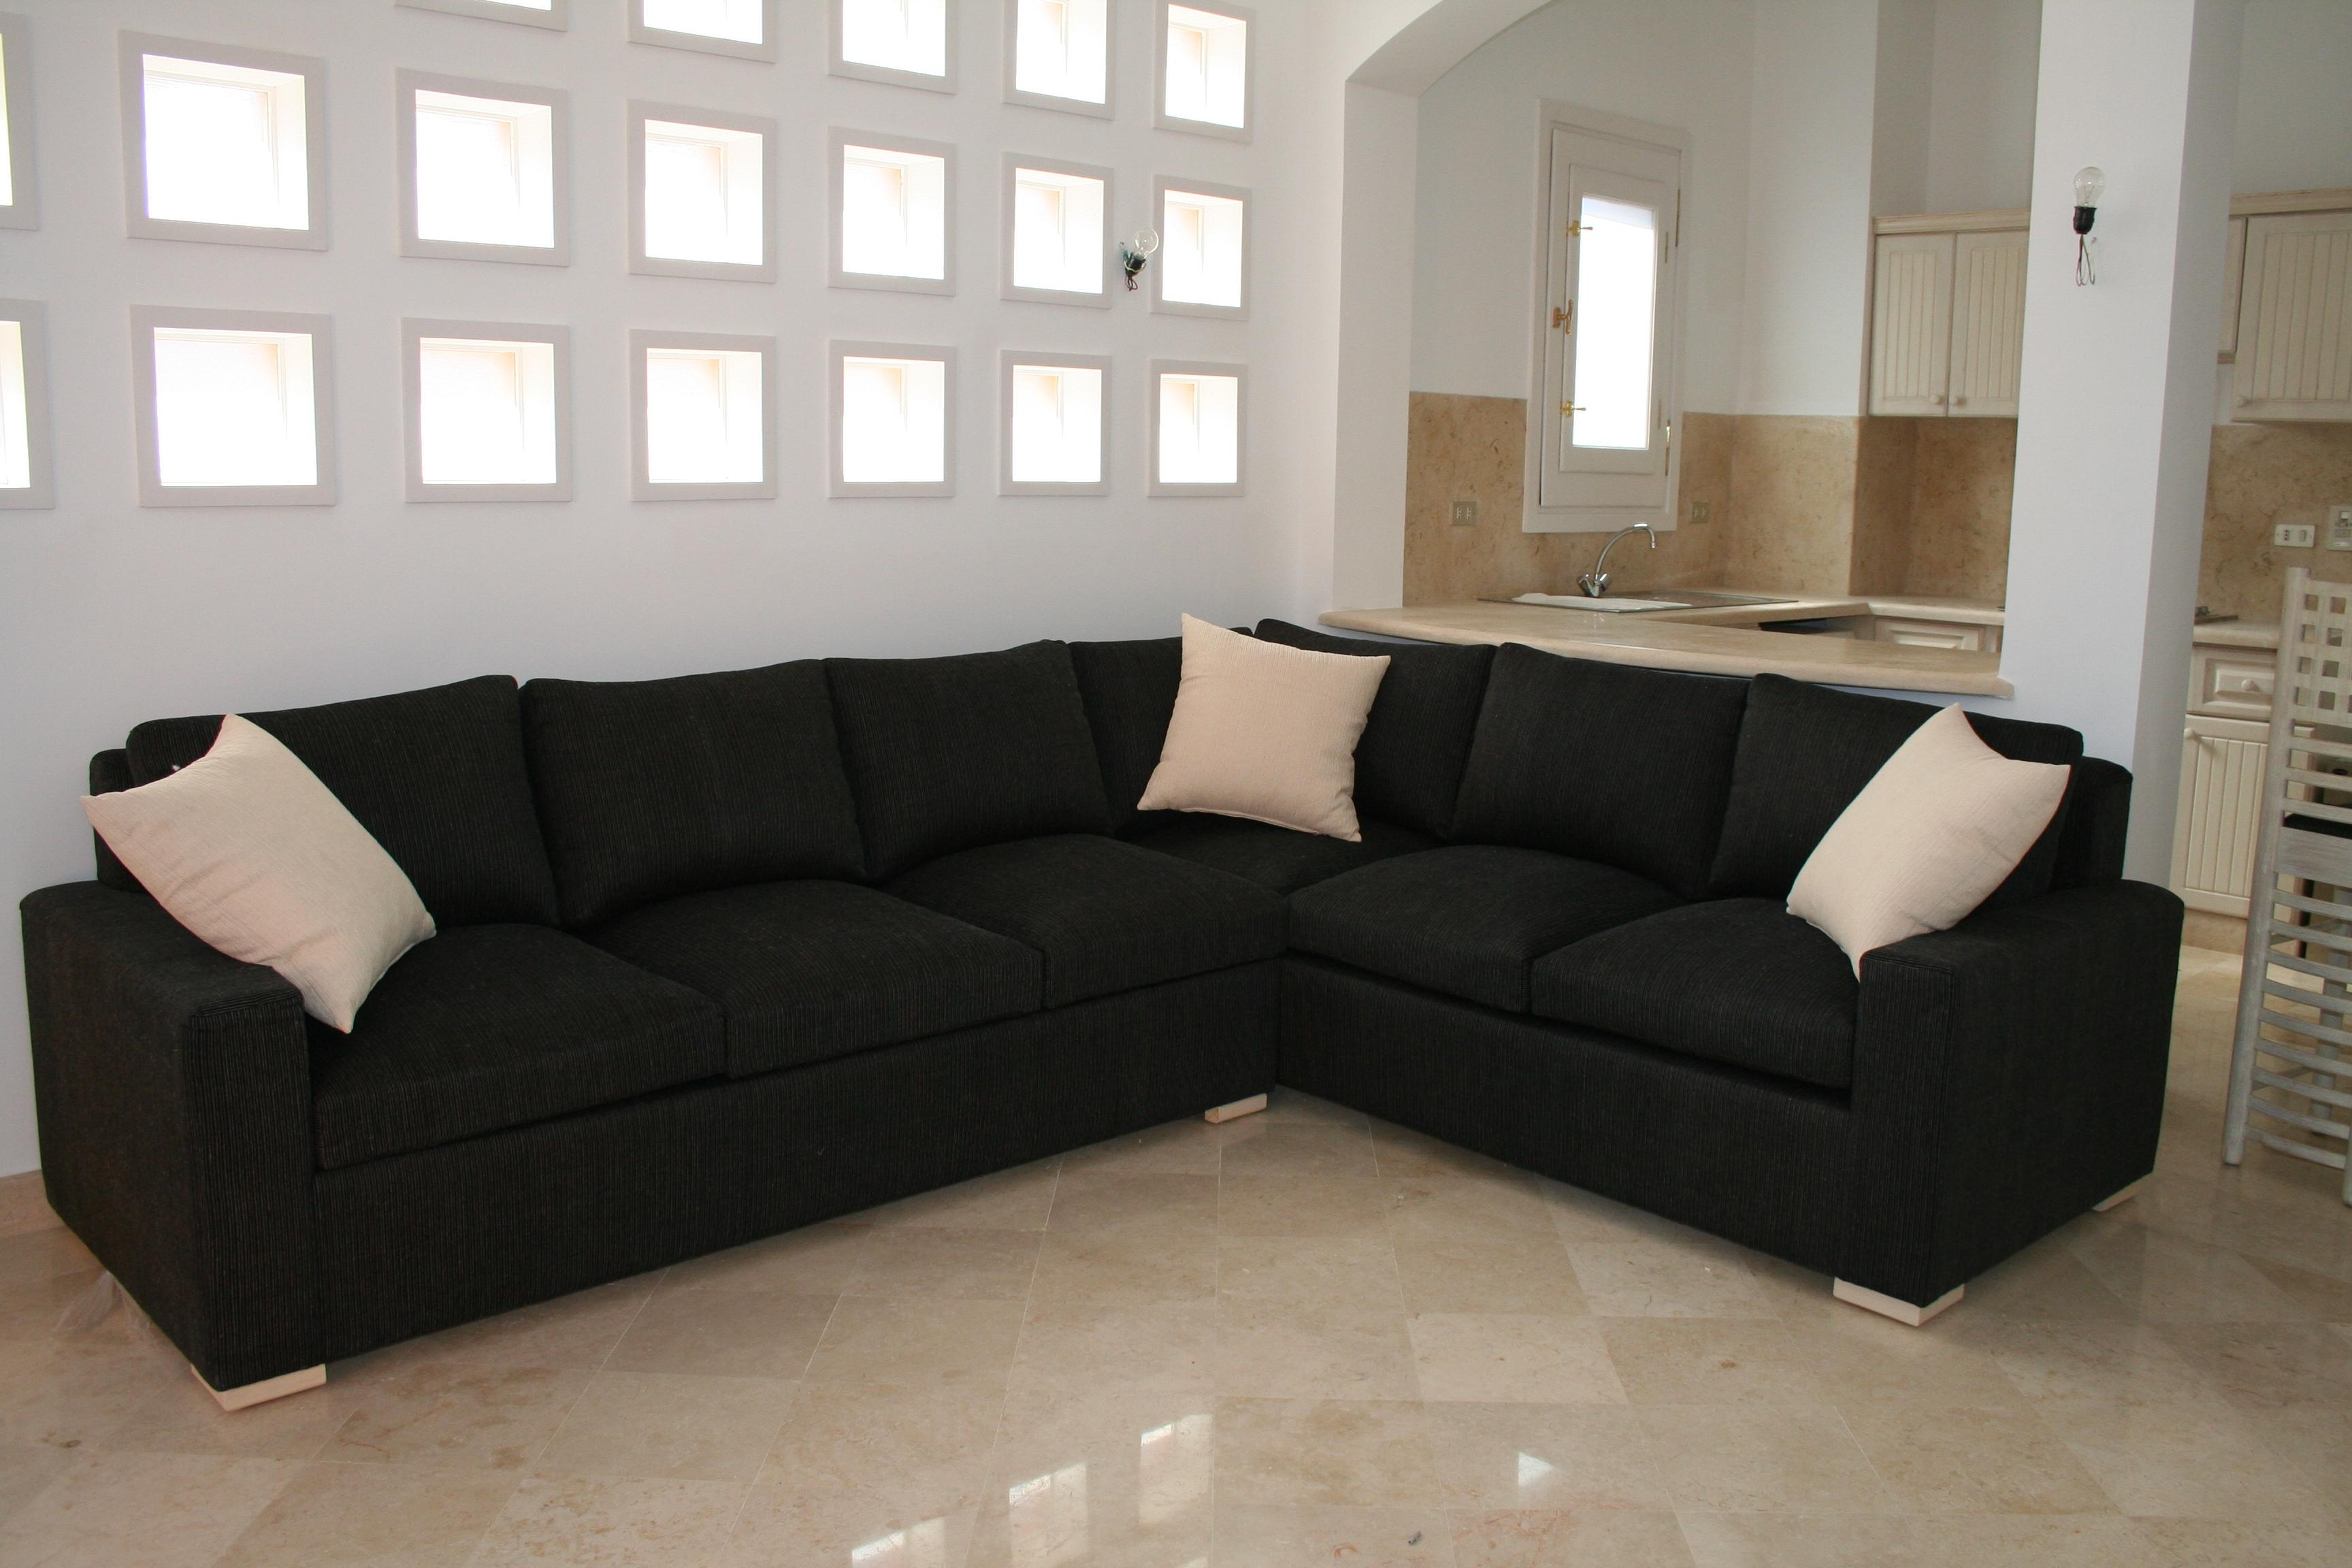 Furniture: Nice Dark Ikea Sectionals Couch With Ikea Ottoman For With Regard To Nice Sectional Couches (View 5 of 20)